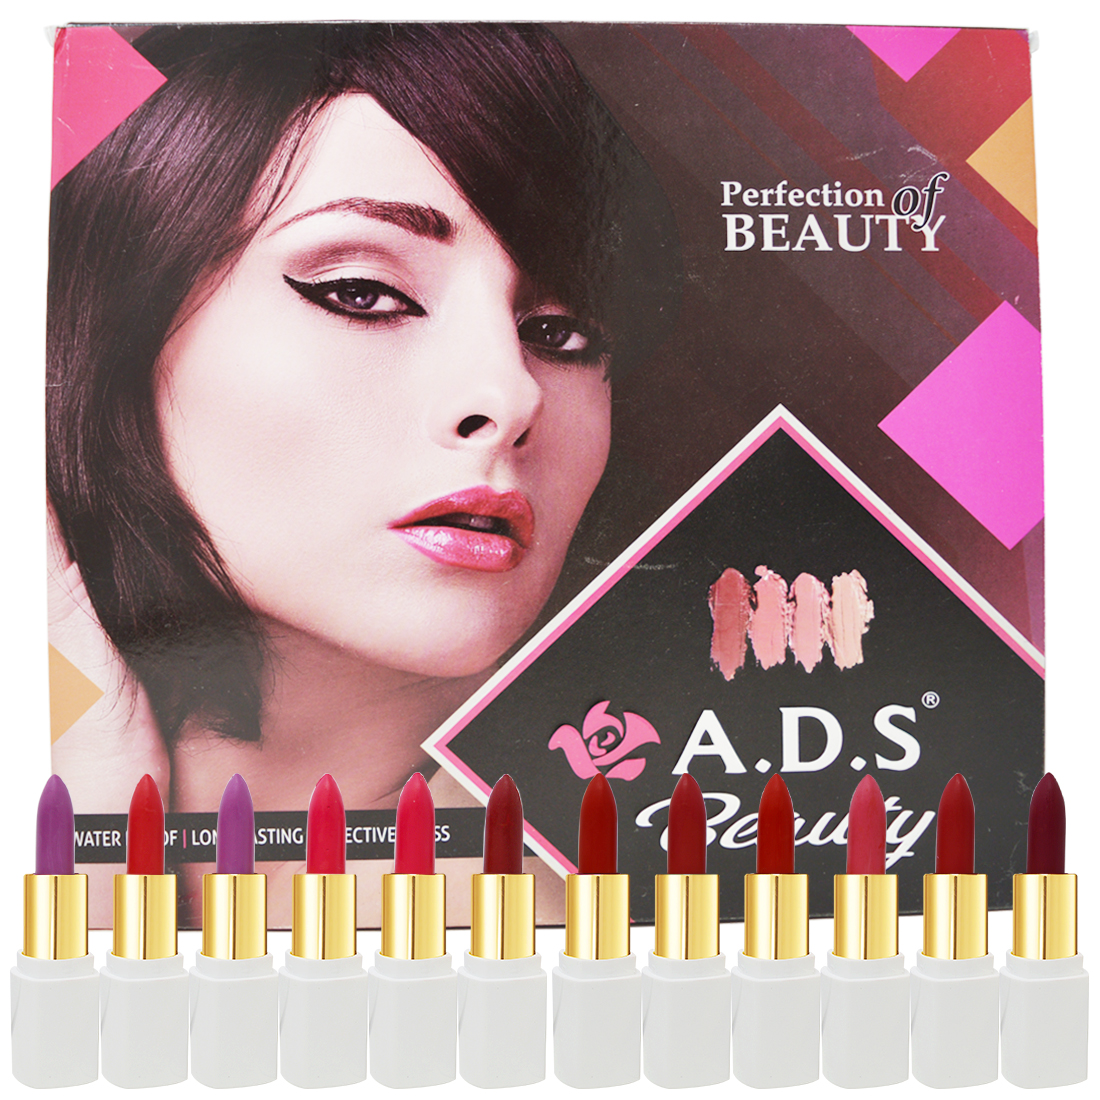 ADS Perfection Beauty Matte Lipstick, (A01740C), Multicolor, 4.5g Each, Pack of 12 With Lilium Hand Cleanser